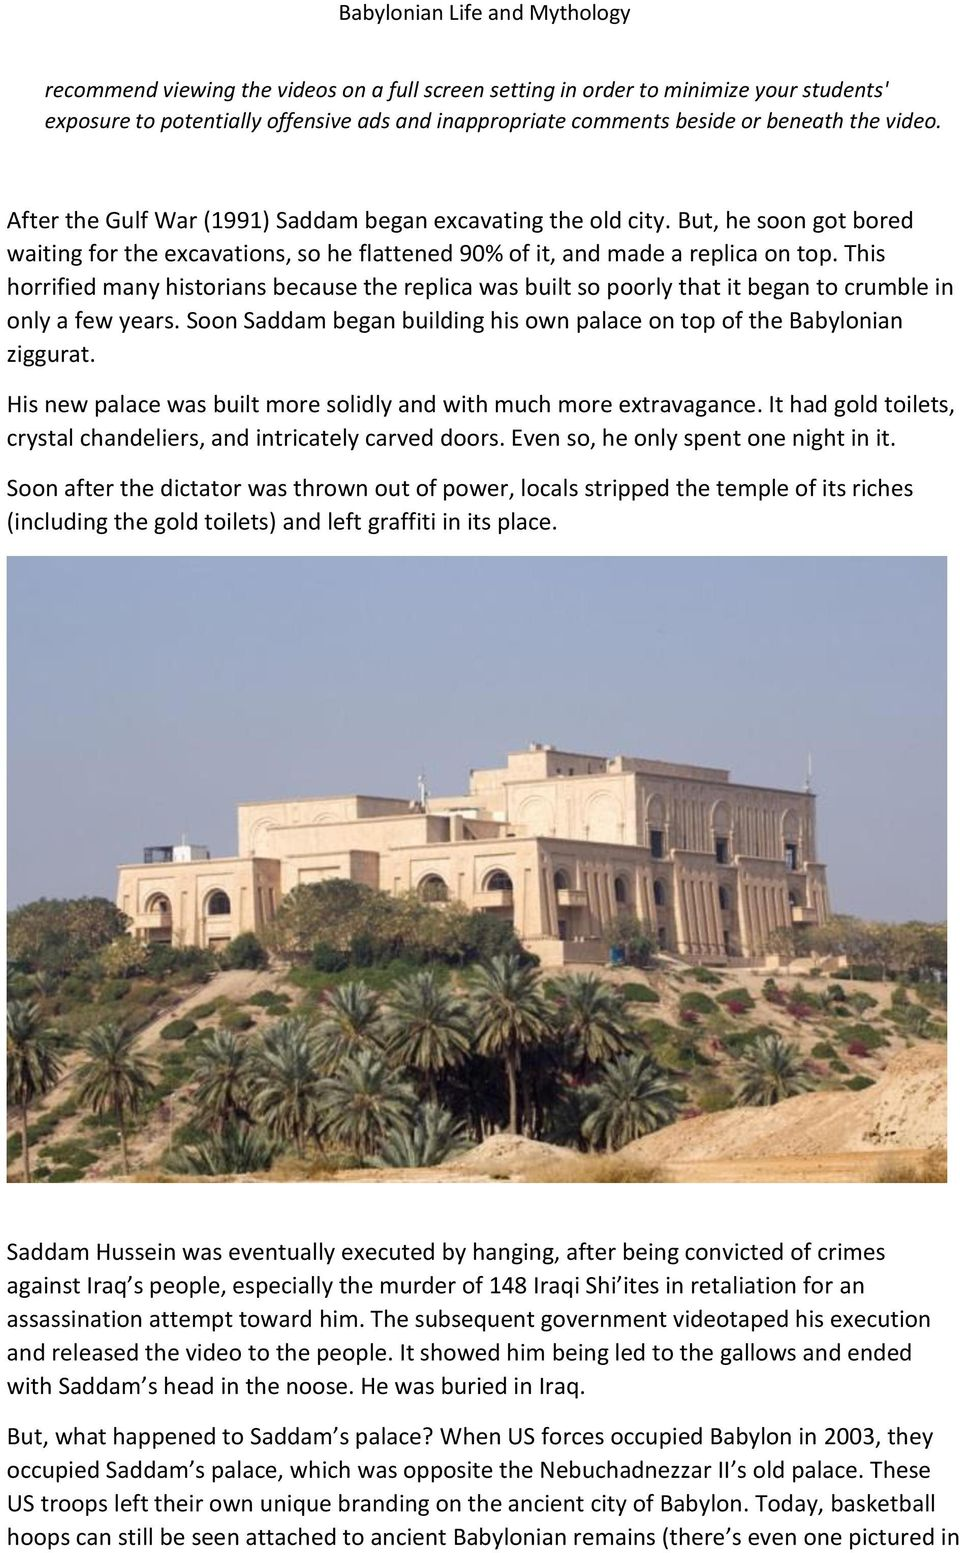 This horrified many historians because the replica was built so poorly that it began to crumble in only a few years. Soon Saddam began building his own palace on top of the Babylonian ziggurat.